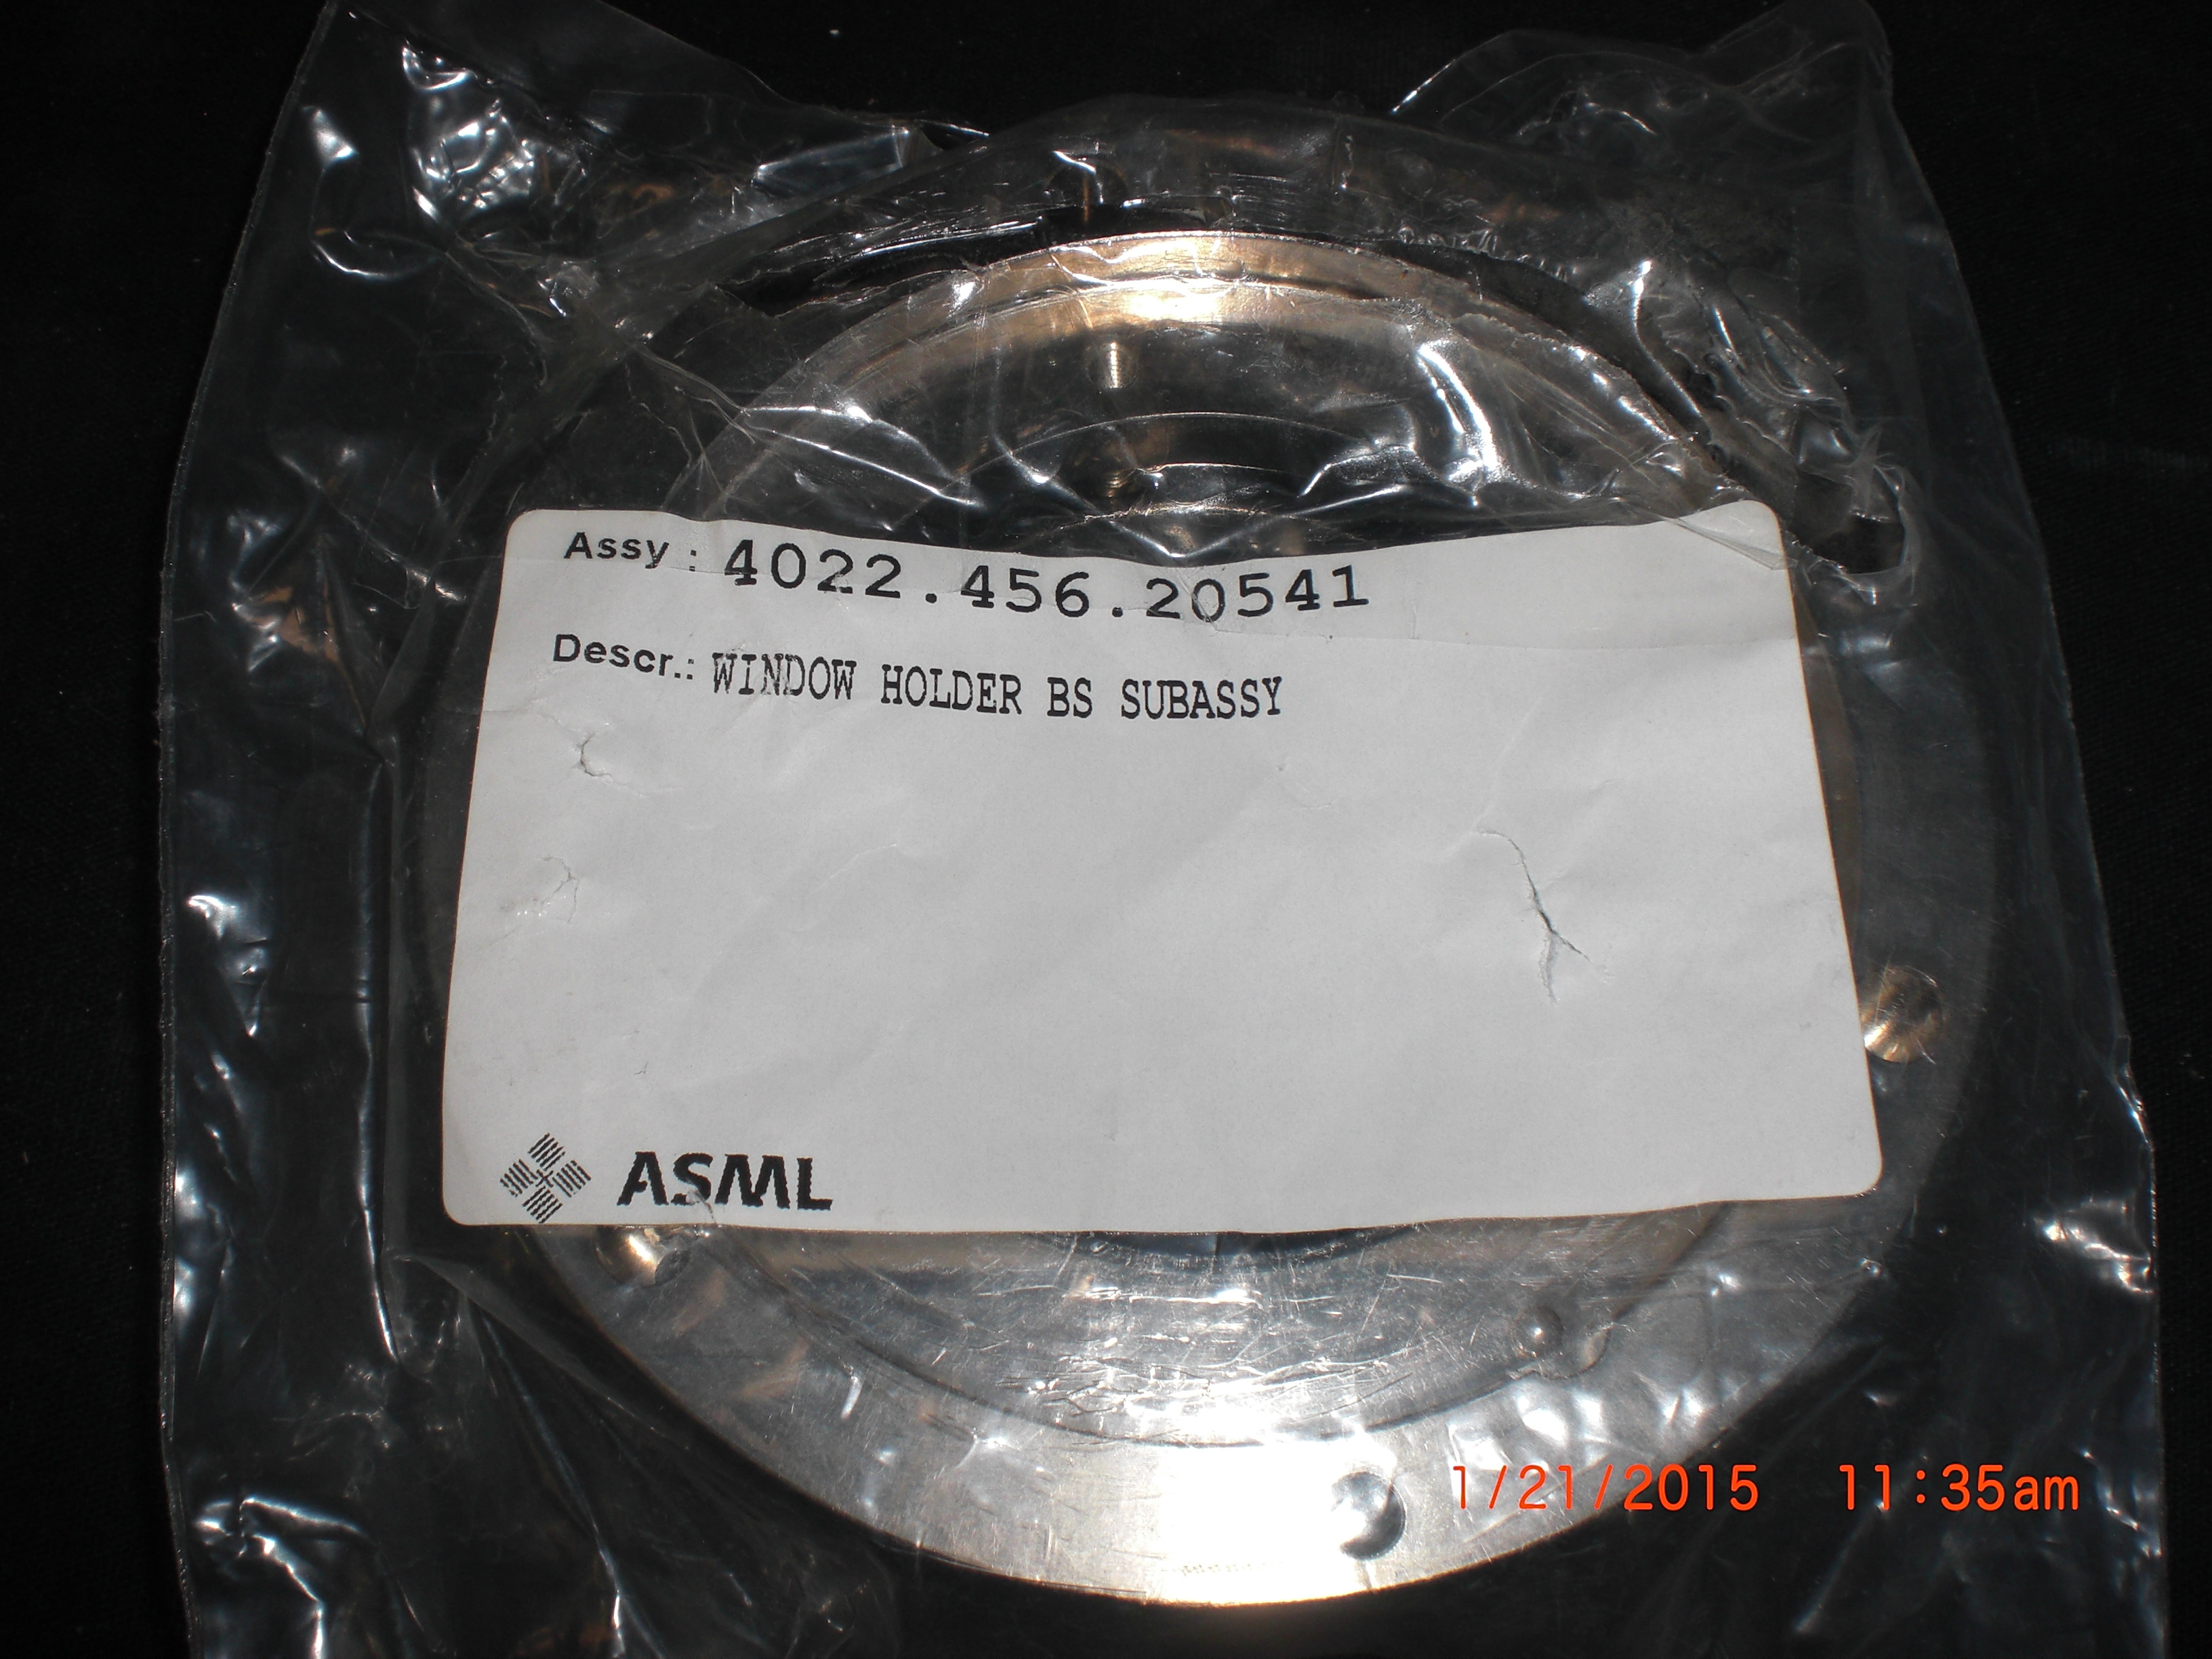 Lens  ASML SERV.456.20541 Window Holder BS SUB-ASSY